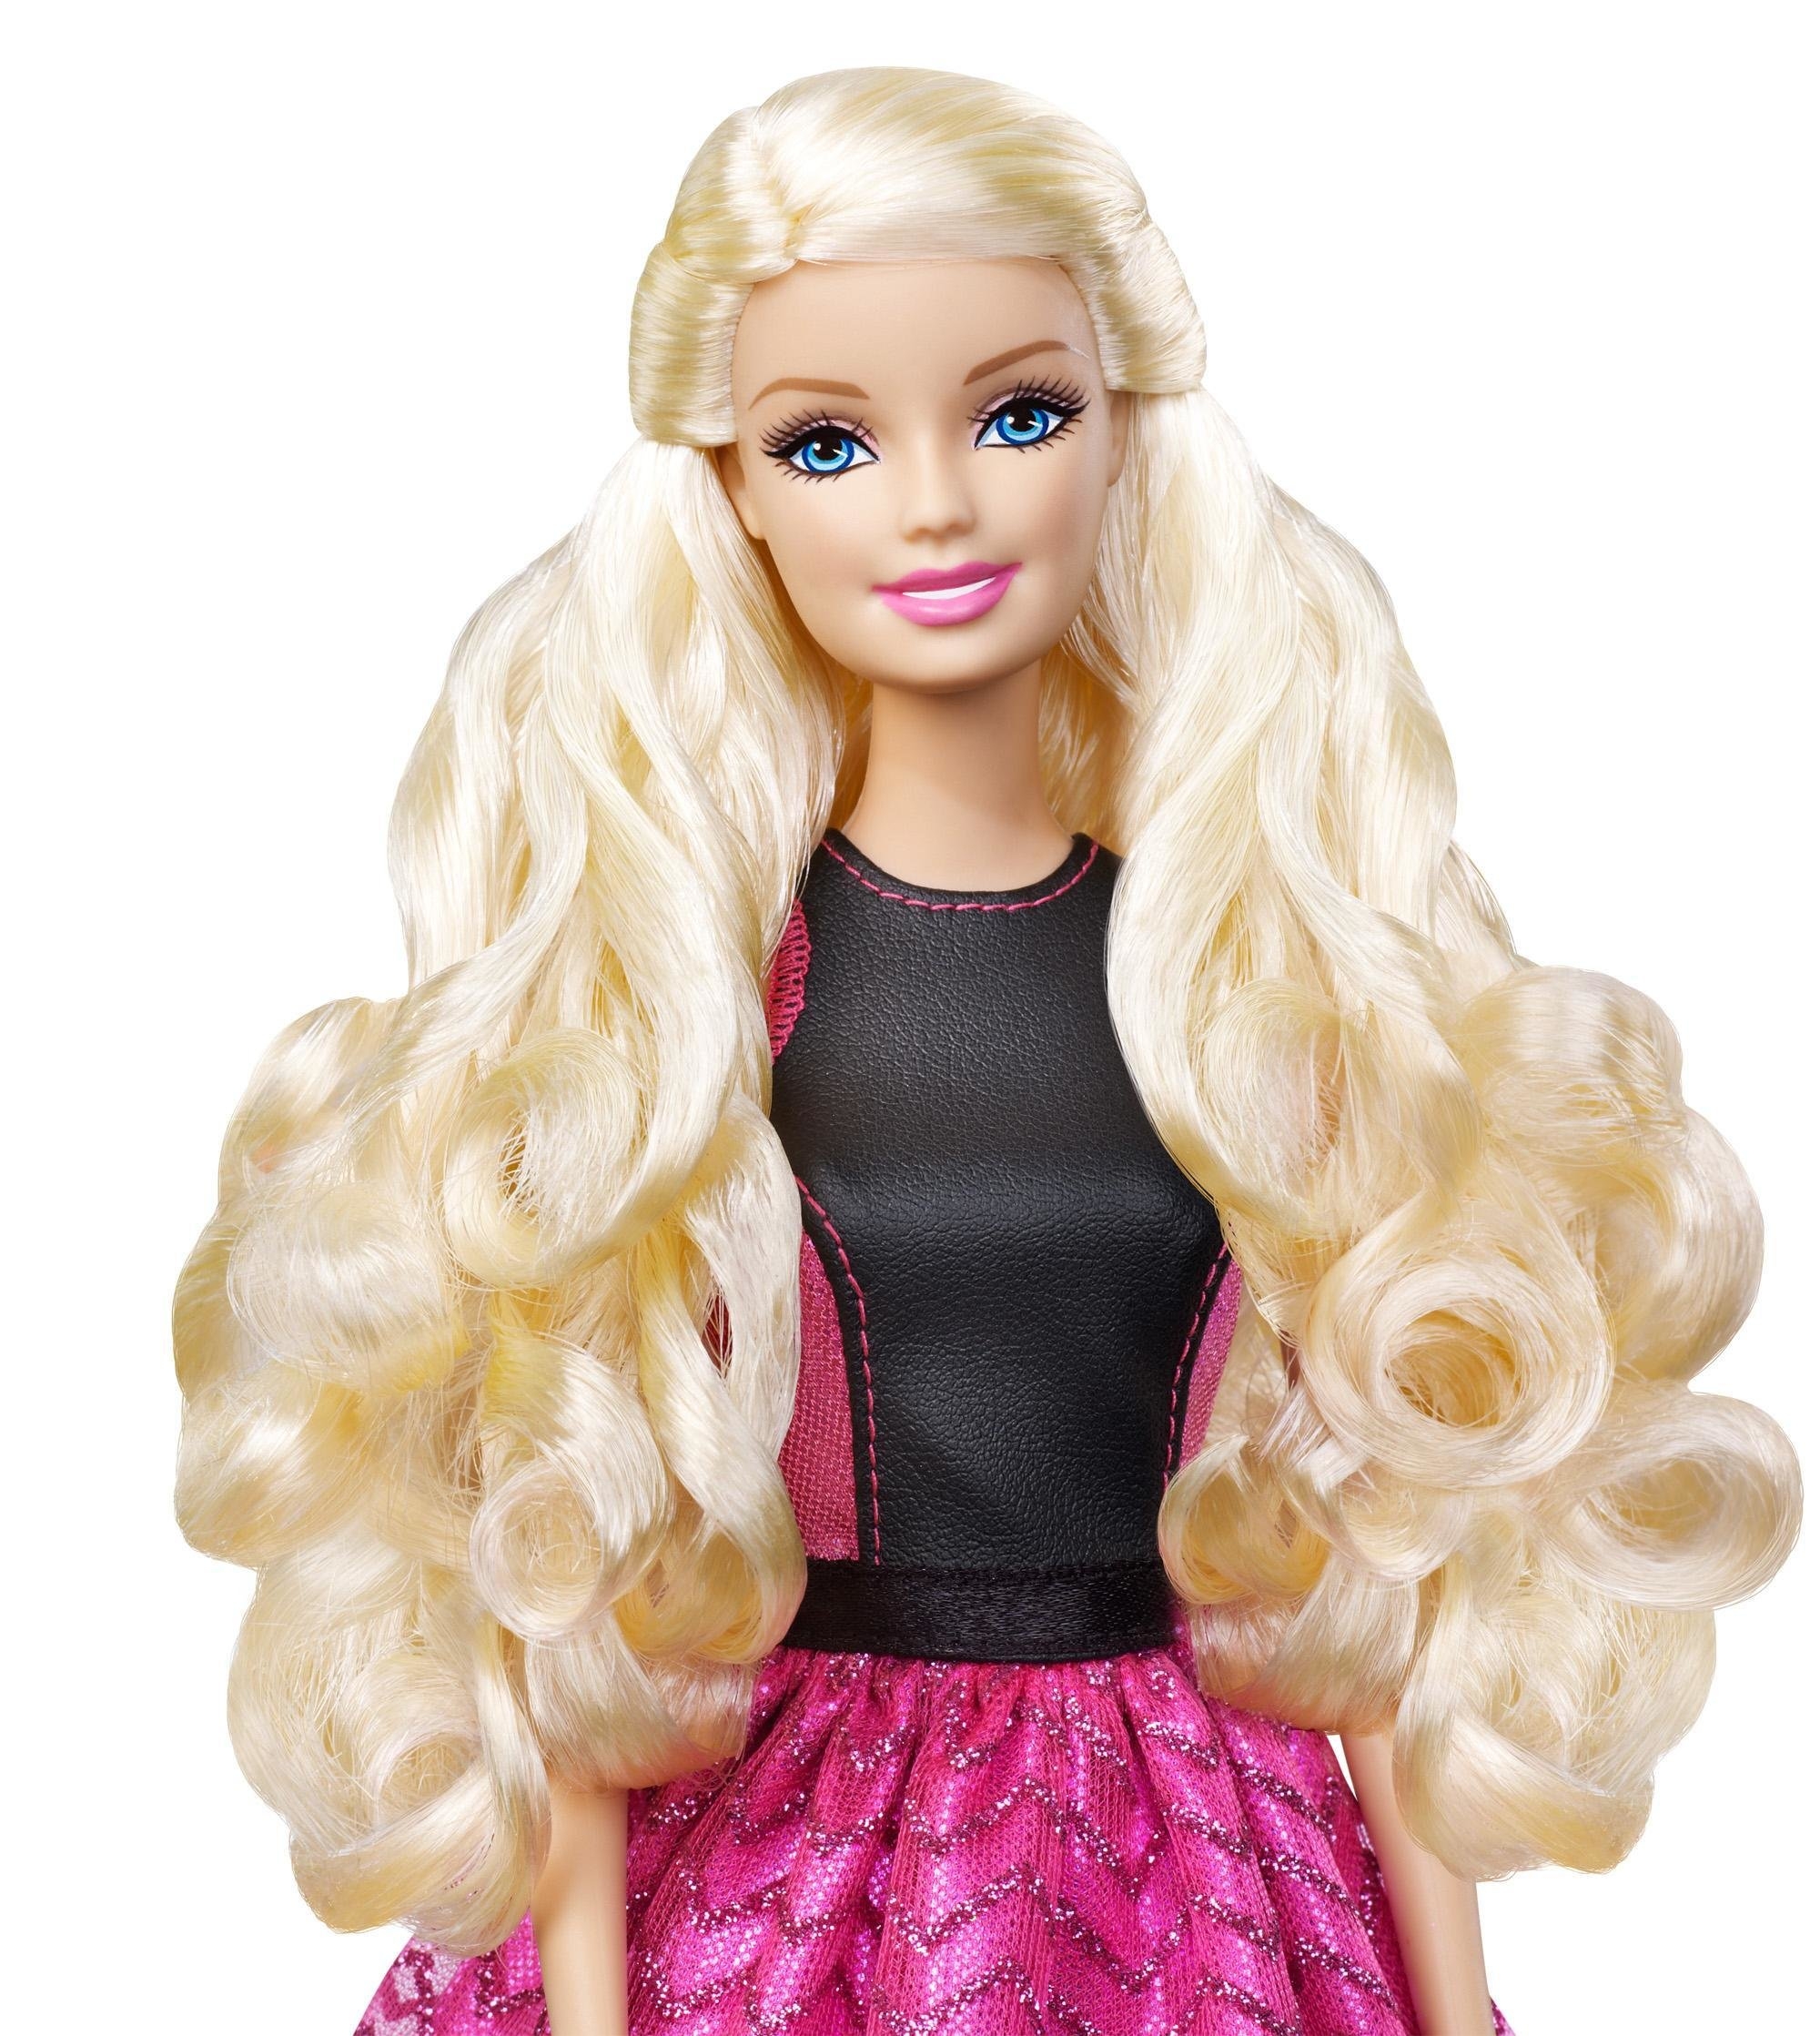 The Best New Barbie Endless Curls Doll Curlers Mattel Blond Hair Pictures